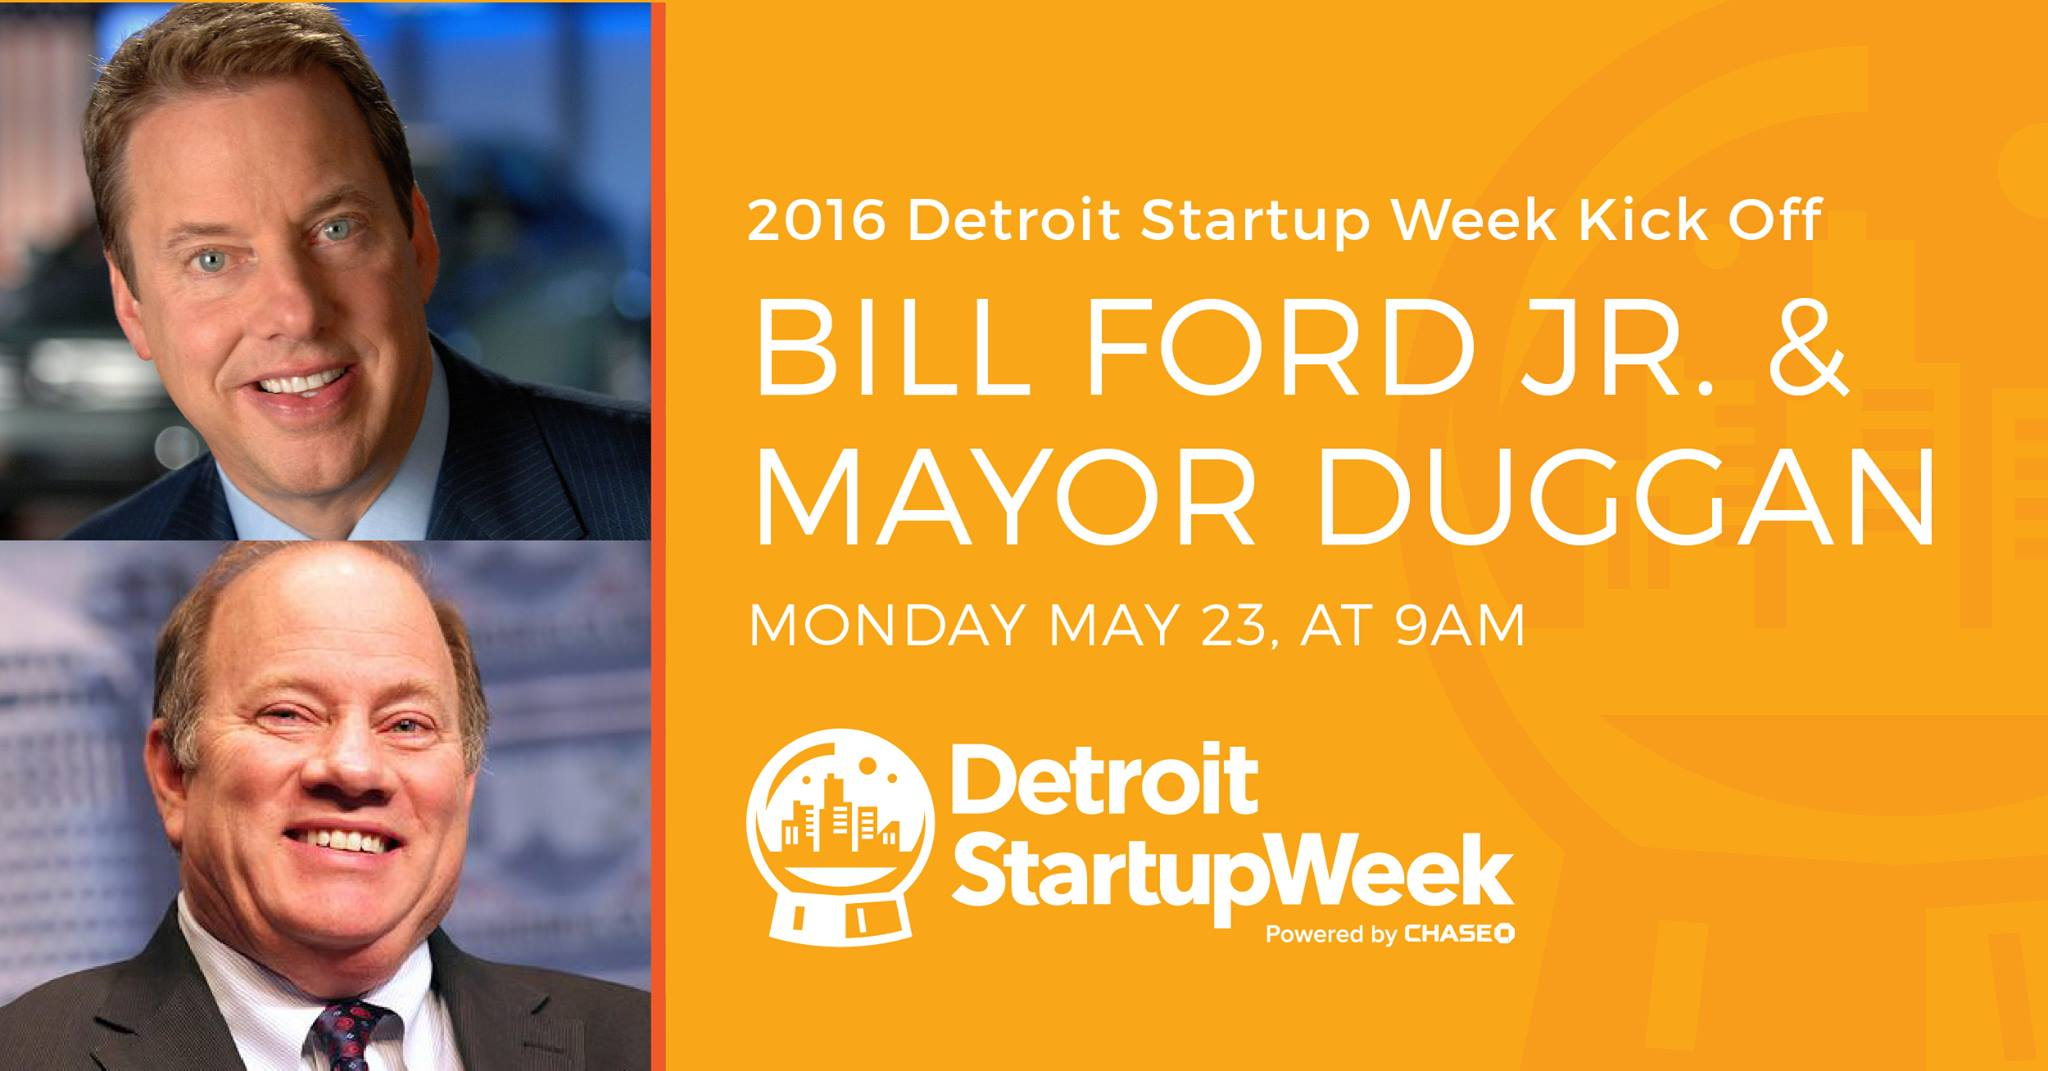 Detroit Startup Week opening speeches by Bill Ford Jr. and Mayor Duggan